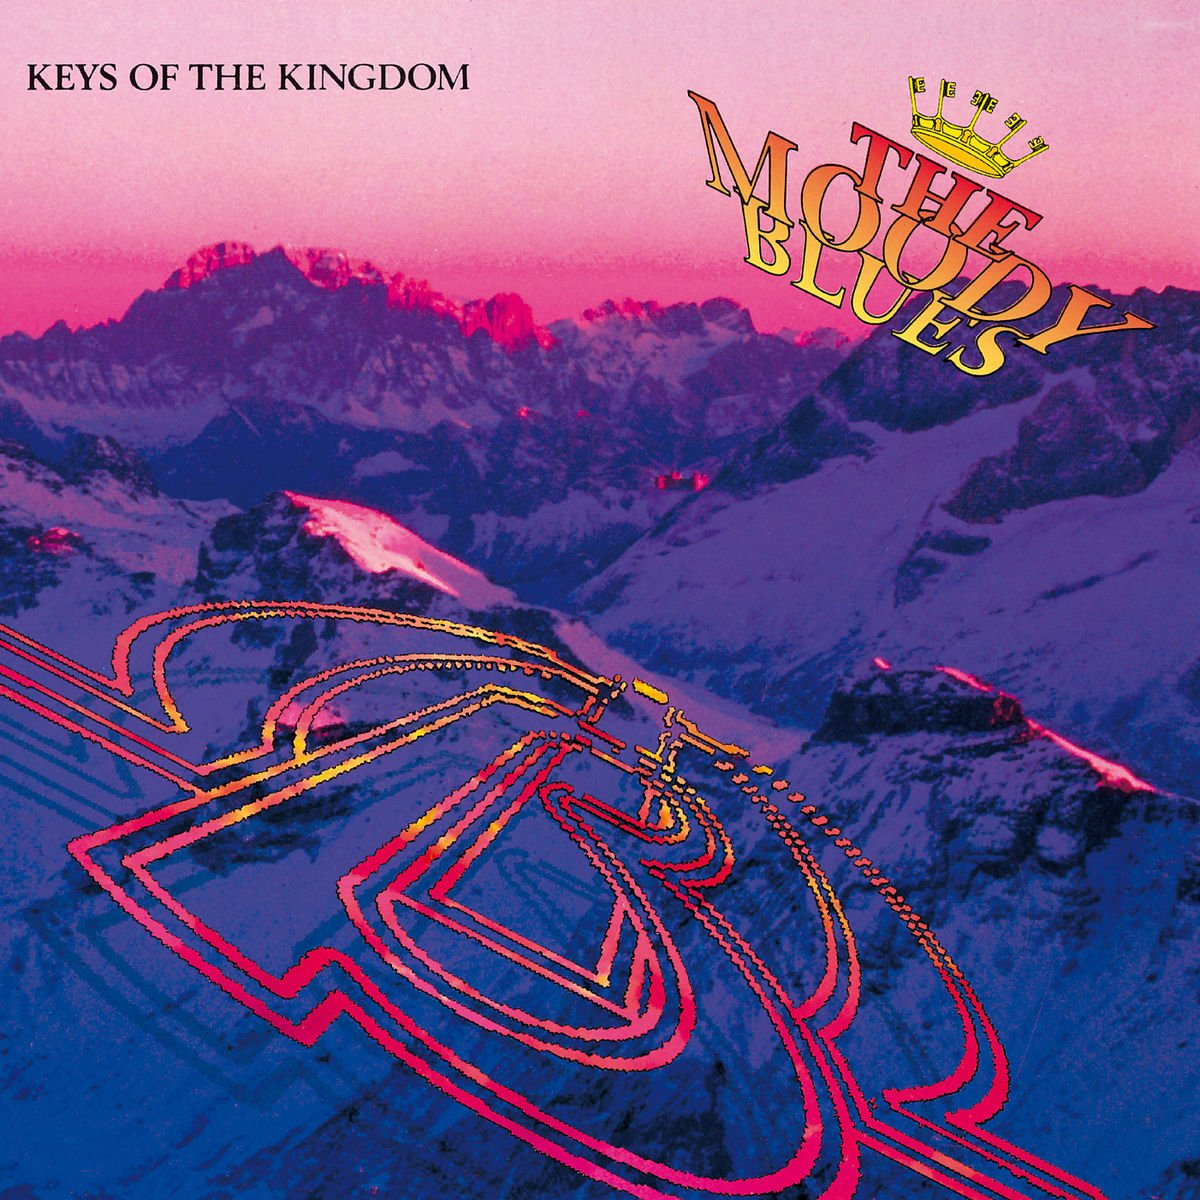 Keys Of The Kingdom, The Moody Blues